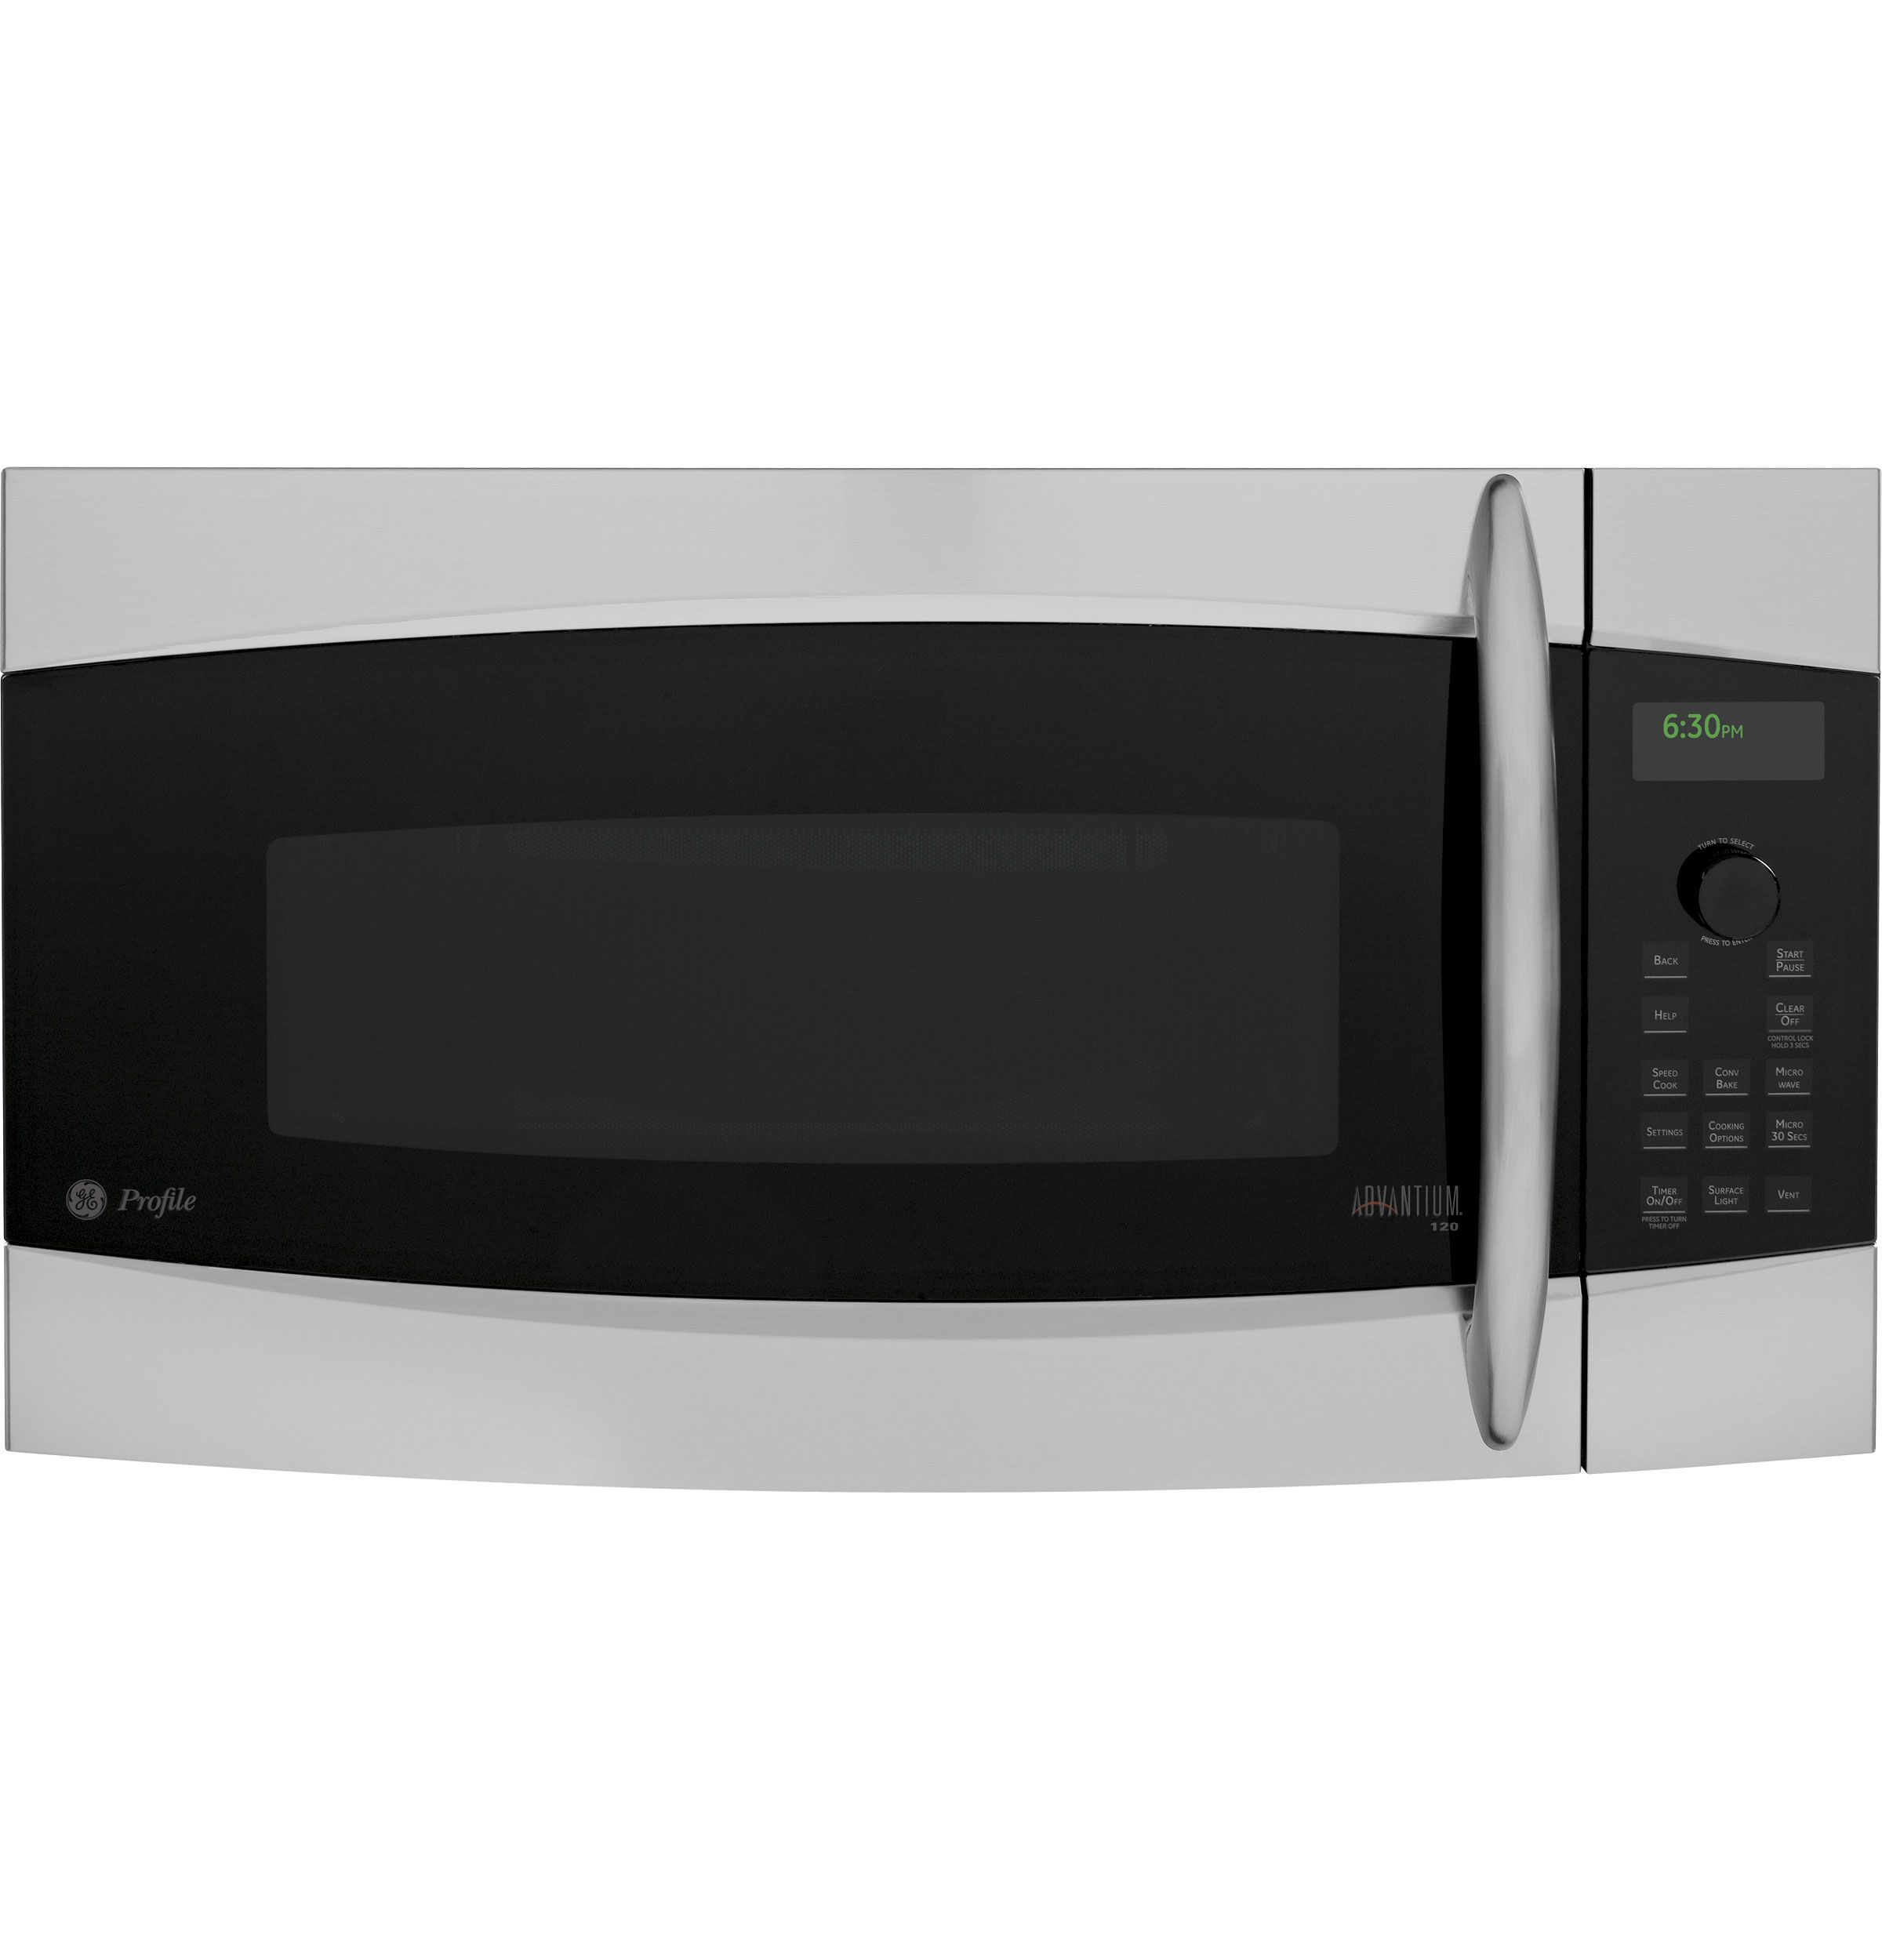 Have It Now And Most Definetly Getting For The New House Love Love Love This Convection Micro Microwave Oven Appliances Microwave